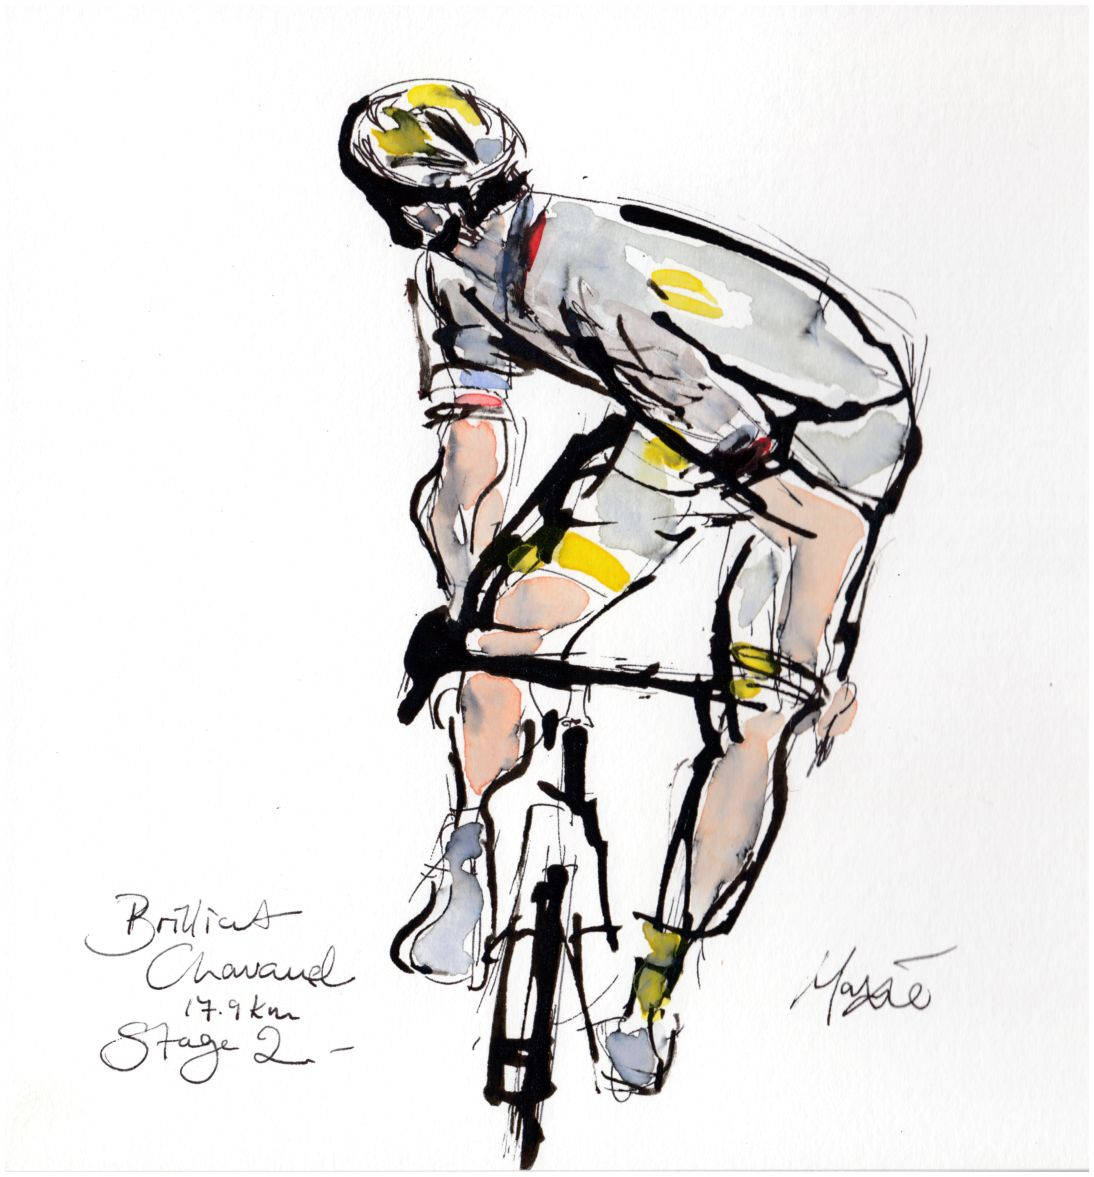 cycling art, tour de france, maxine dodd, sylvain chavanel